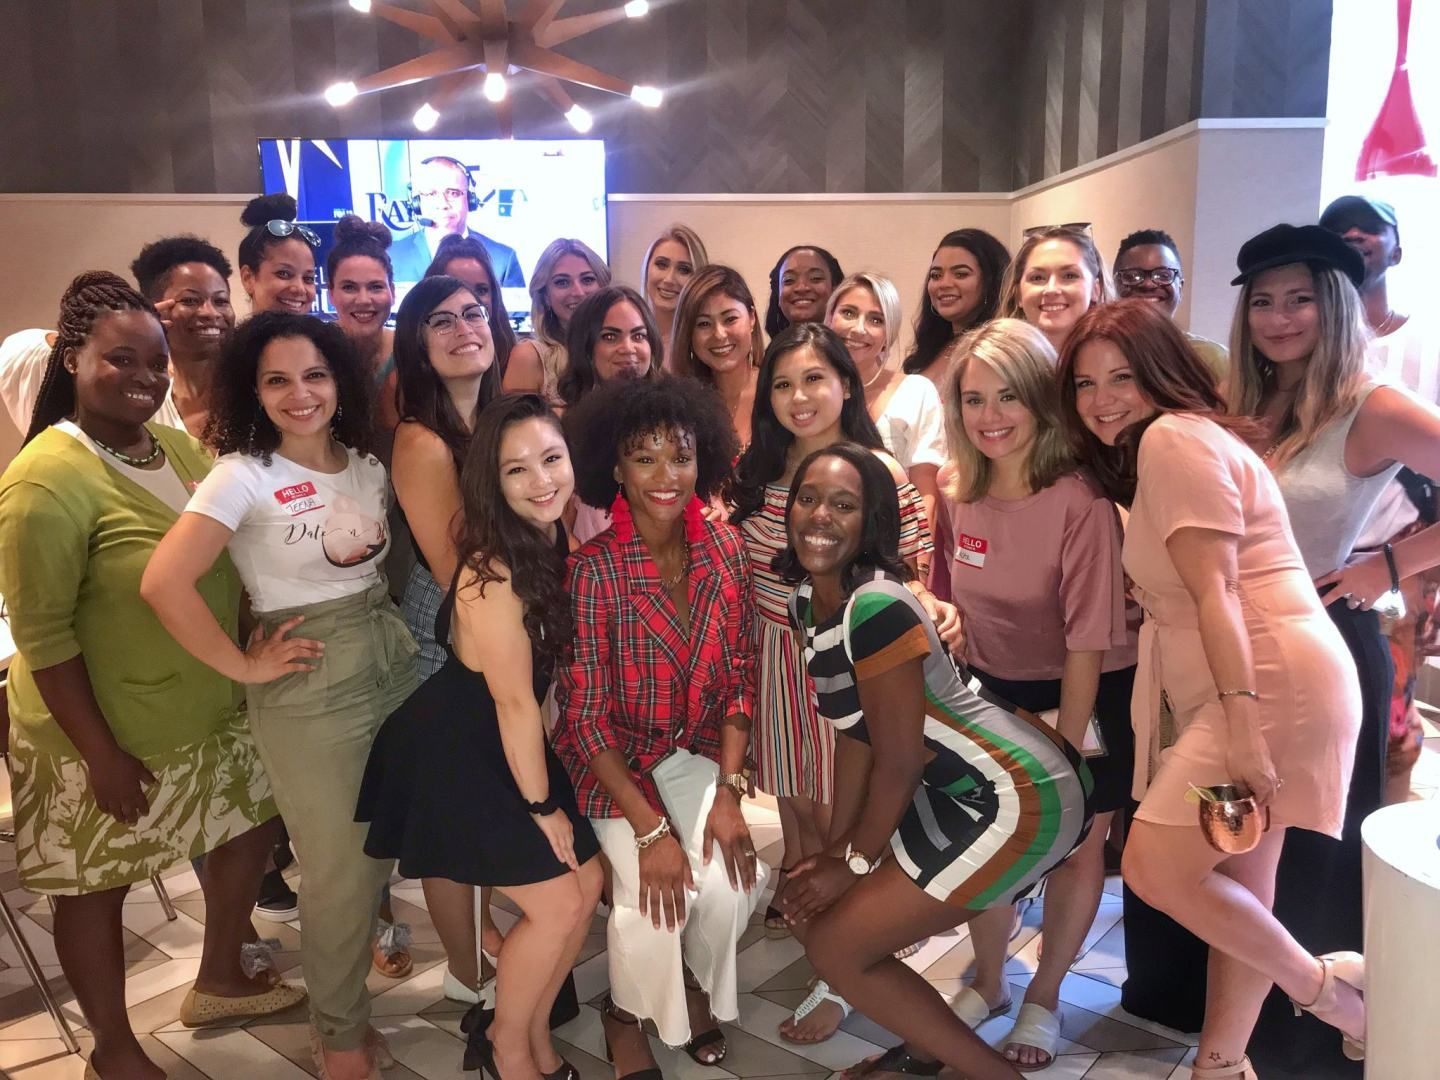 Philly Influencer Mixer Business Happy Hour Vida Fashionista Business Happy Hour Influencer Influencer Marketing